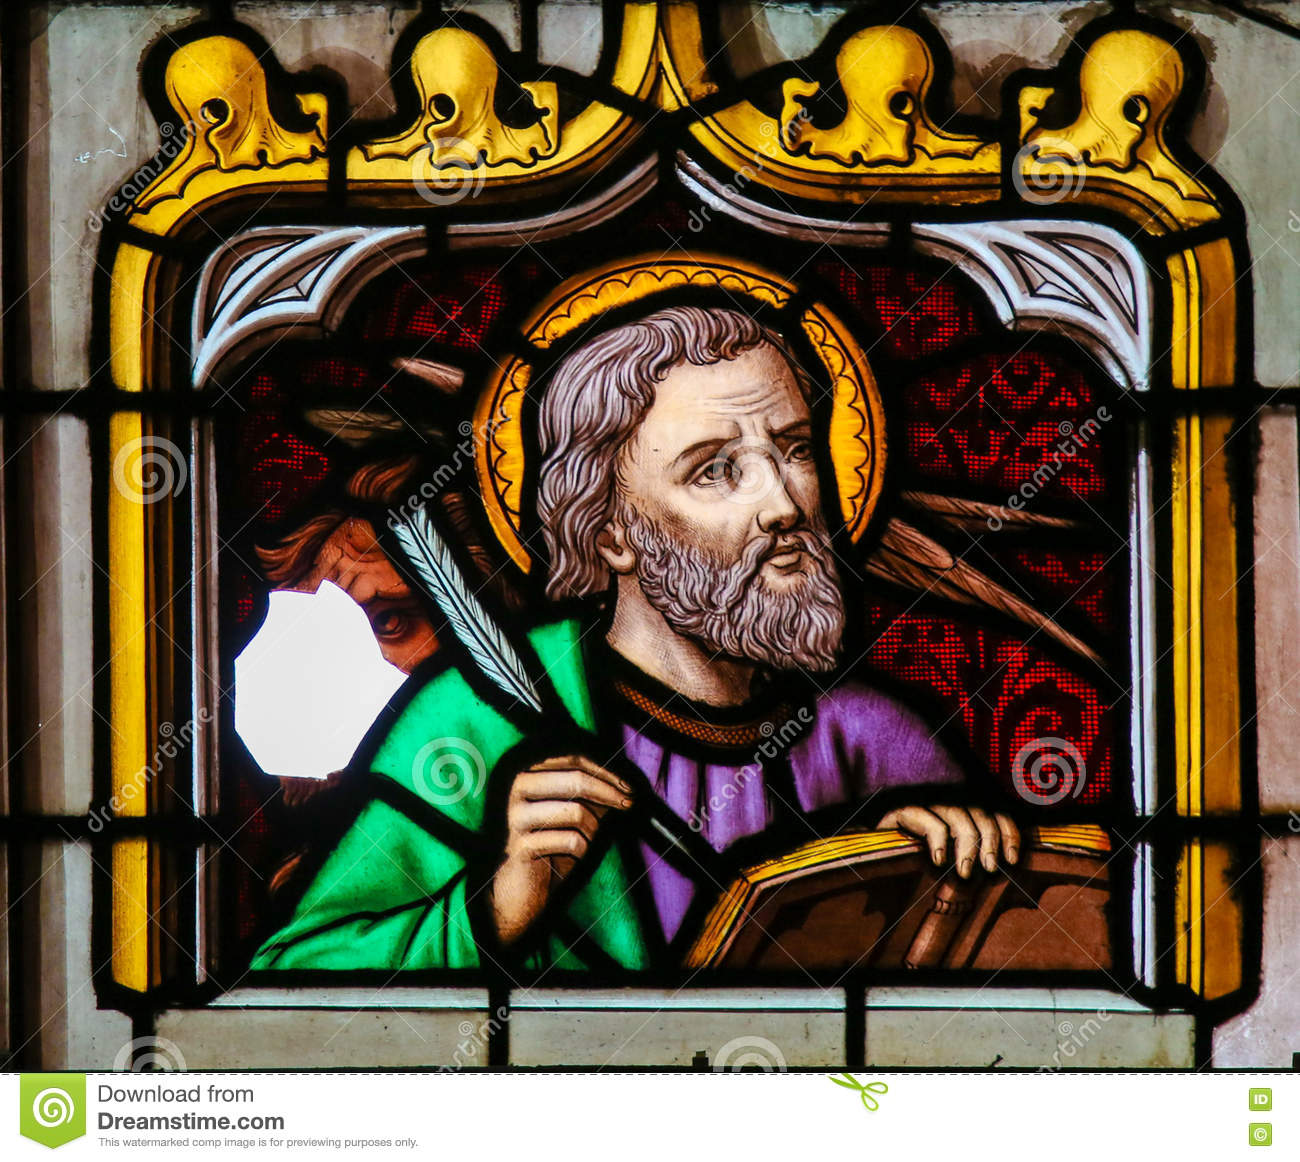 Stained Glass of St Mark the Evangelist